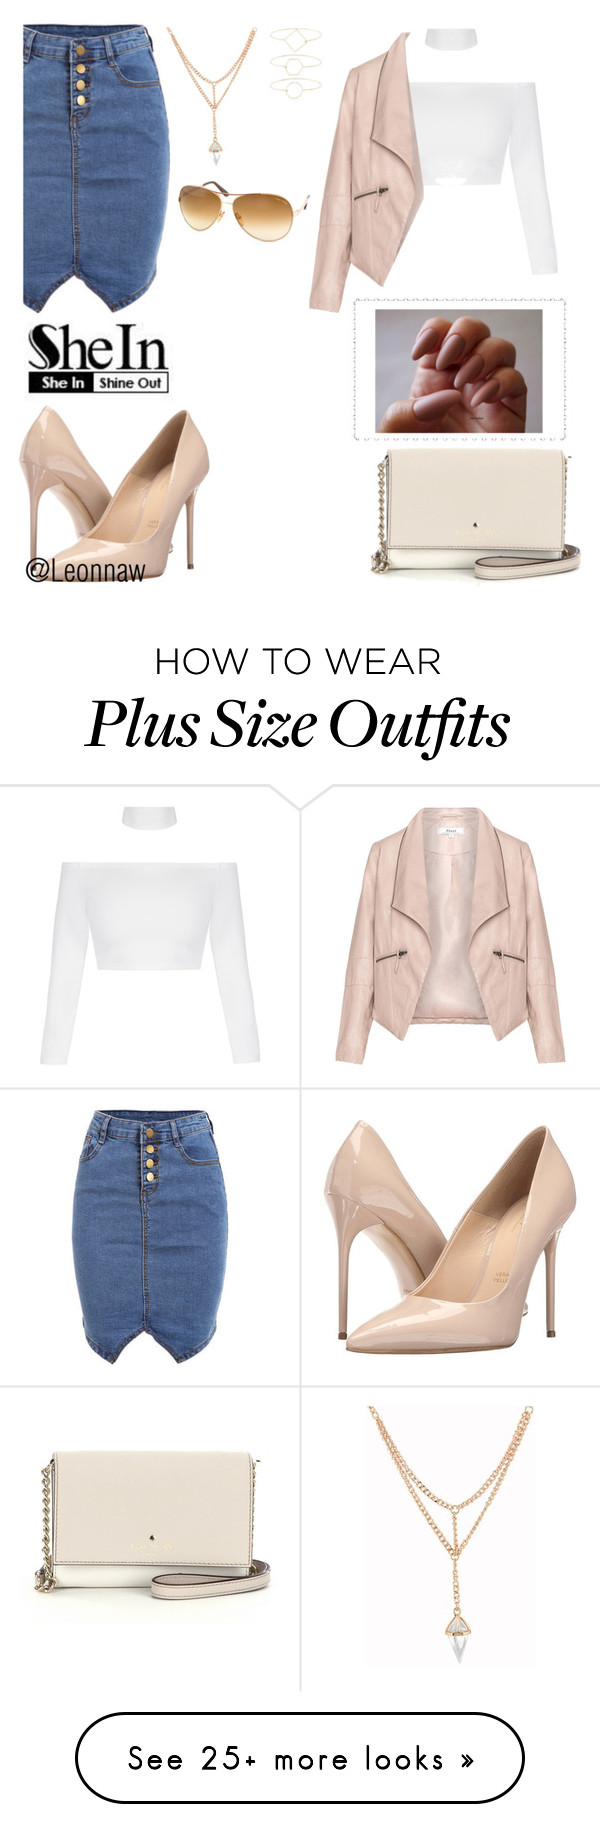 """Evening Out"" by leonnaw on Polyvore featuring Massimo Matteo, Kate Spade, Zizzi, Accessorize and Tom Ford"